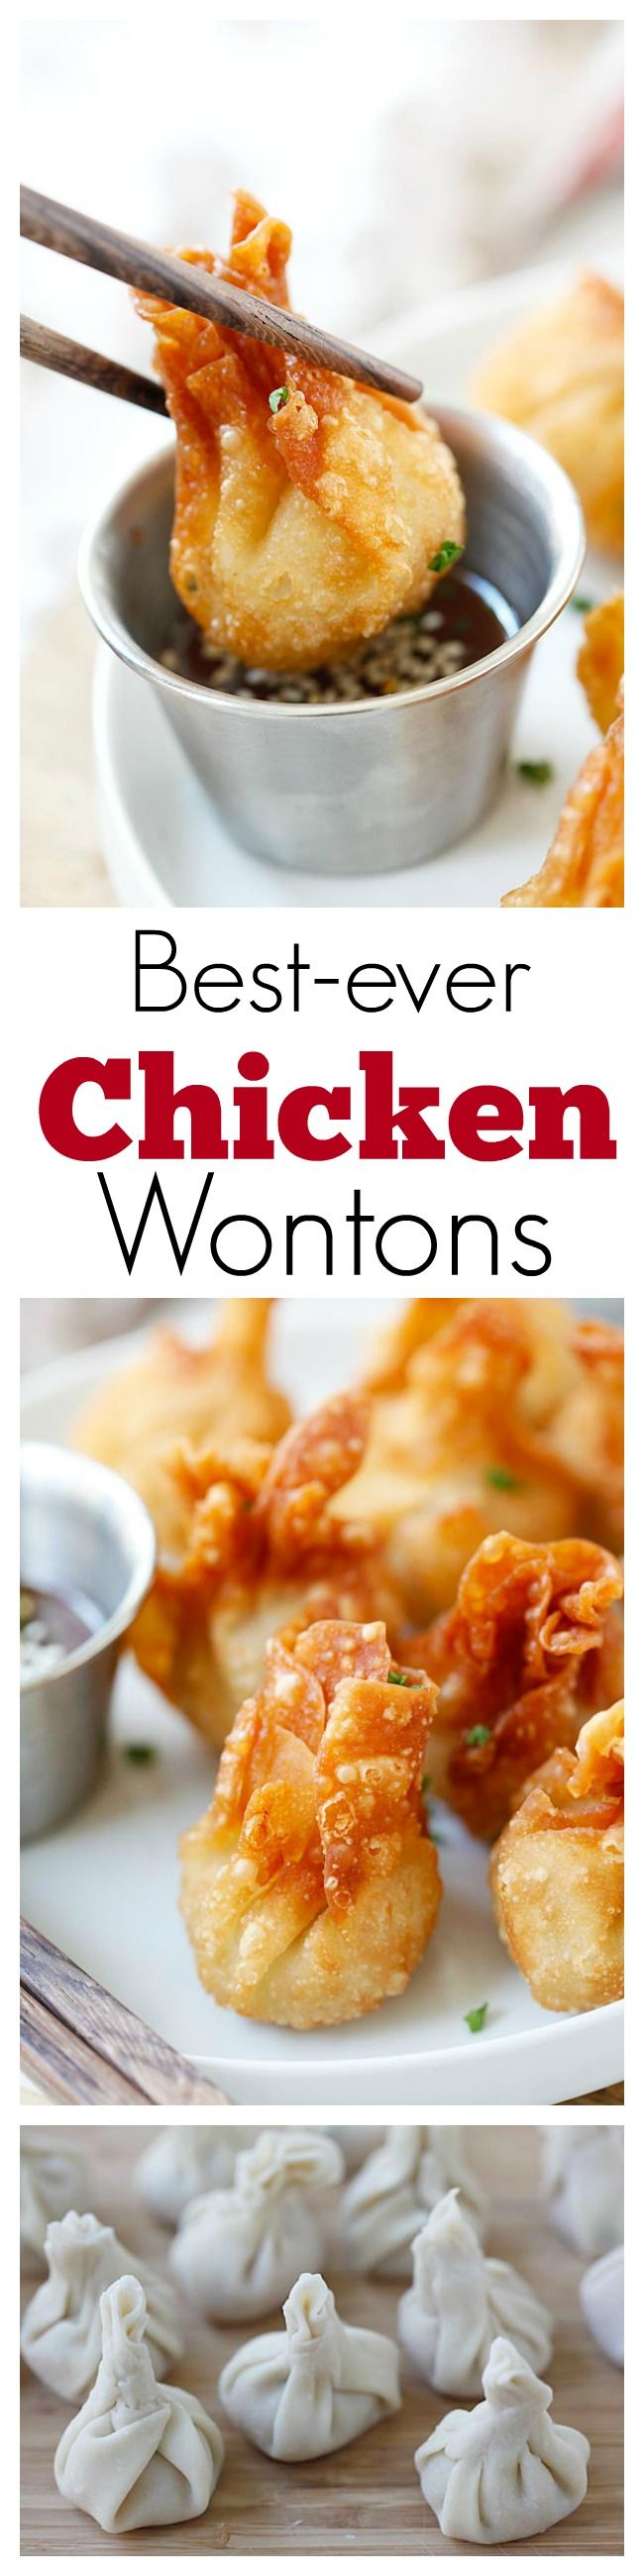 Chicken   Fried apparel and Chicken Recipe clearance Wontons Wontons  Wontons   Chicken